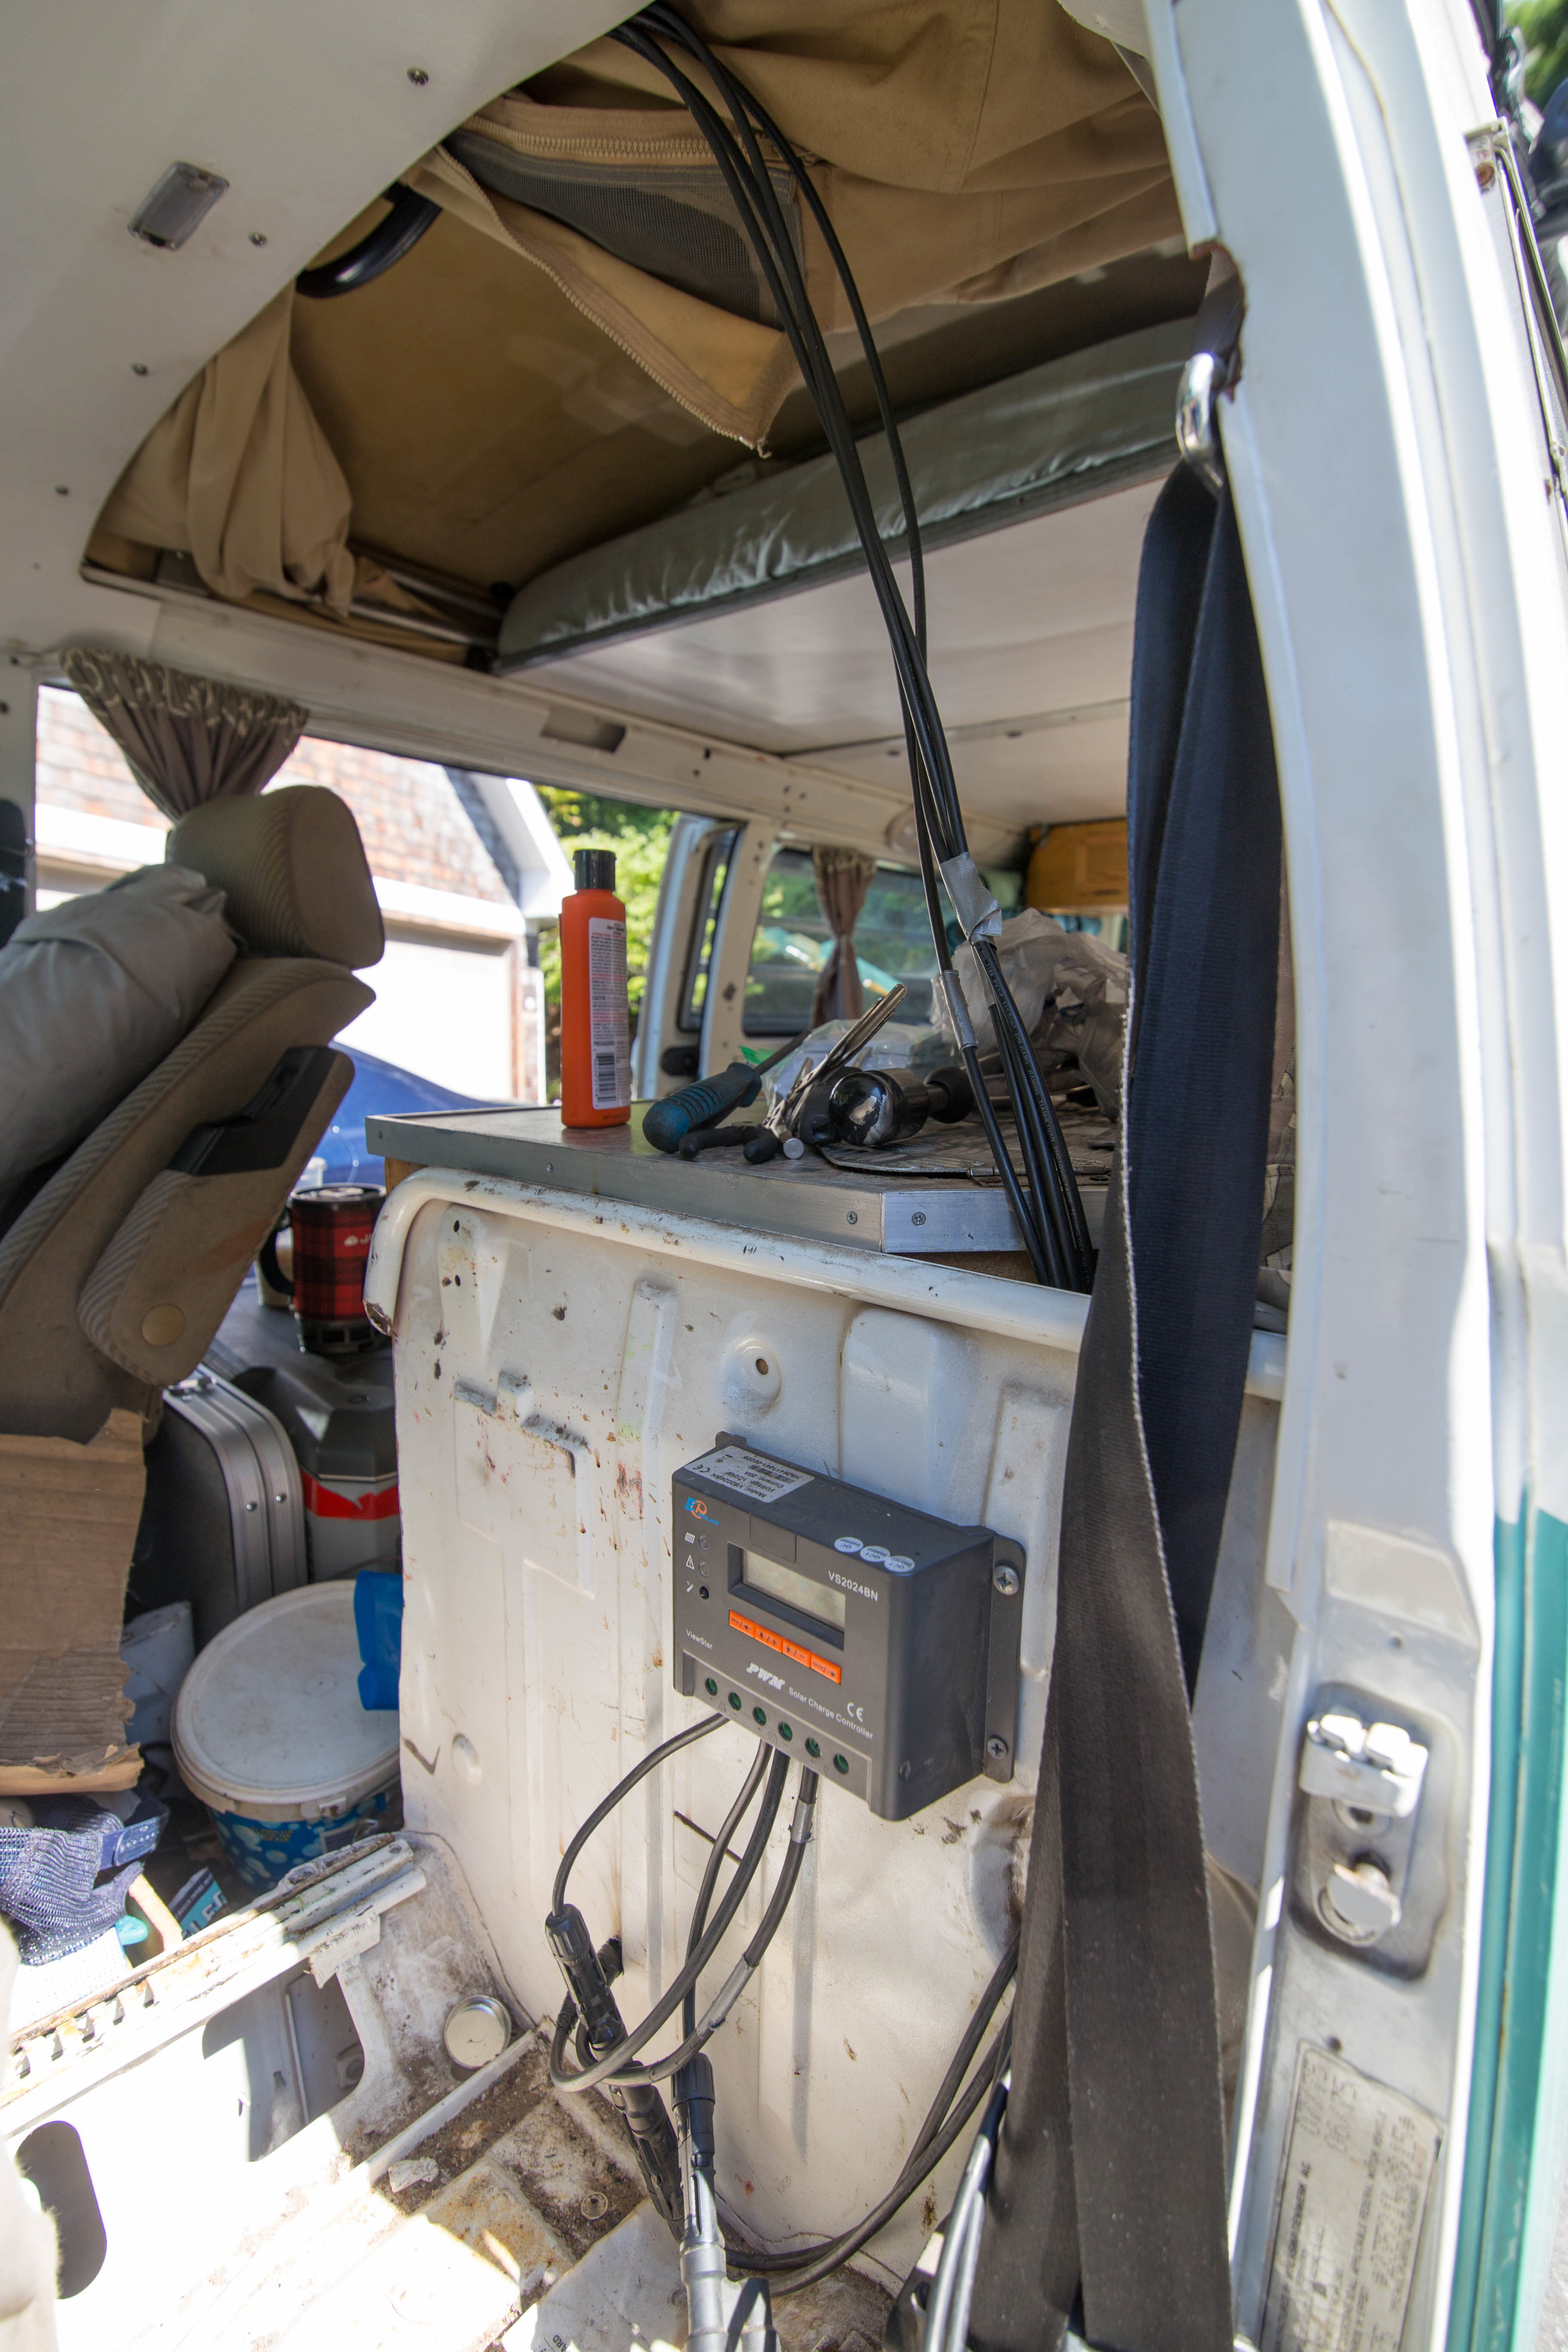 The wires are pulled from behind the headliner, secured near the driver's seat belt, then routed behind the bulkhead. I drilled a two holes in the bulkhead, one for the panel wires to the controller and one for the tray wires, from the controller to the battery in the engine bay.